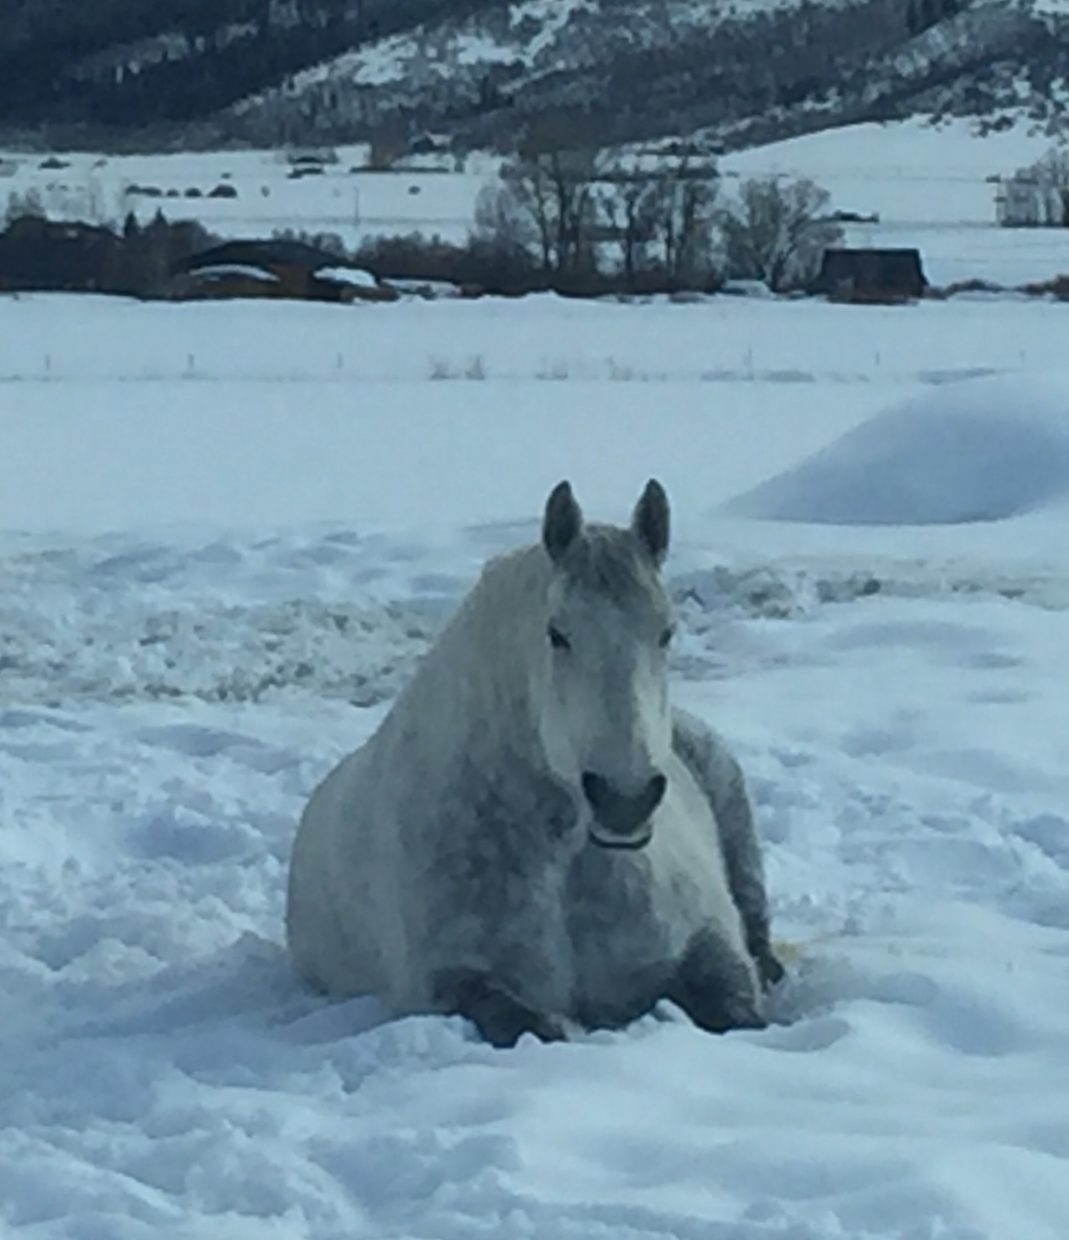 Barrett Moore, age 7 while visiting Grandpa, captured this photo of a beautiful horse resting!